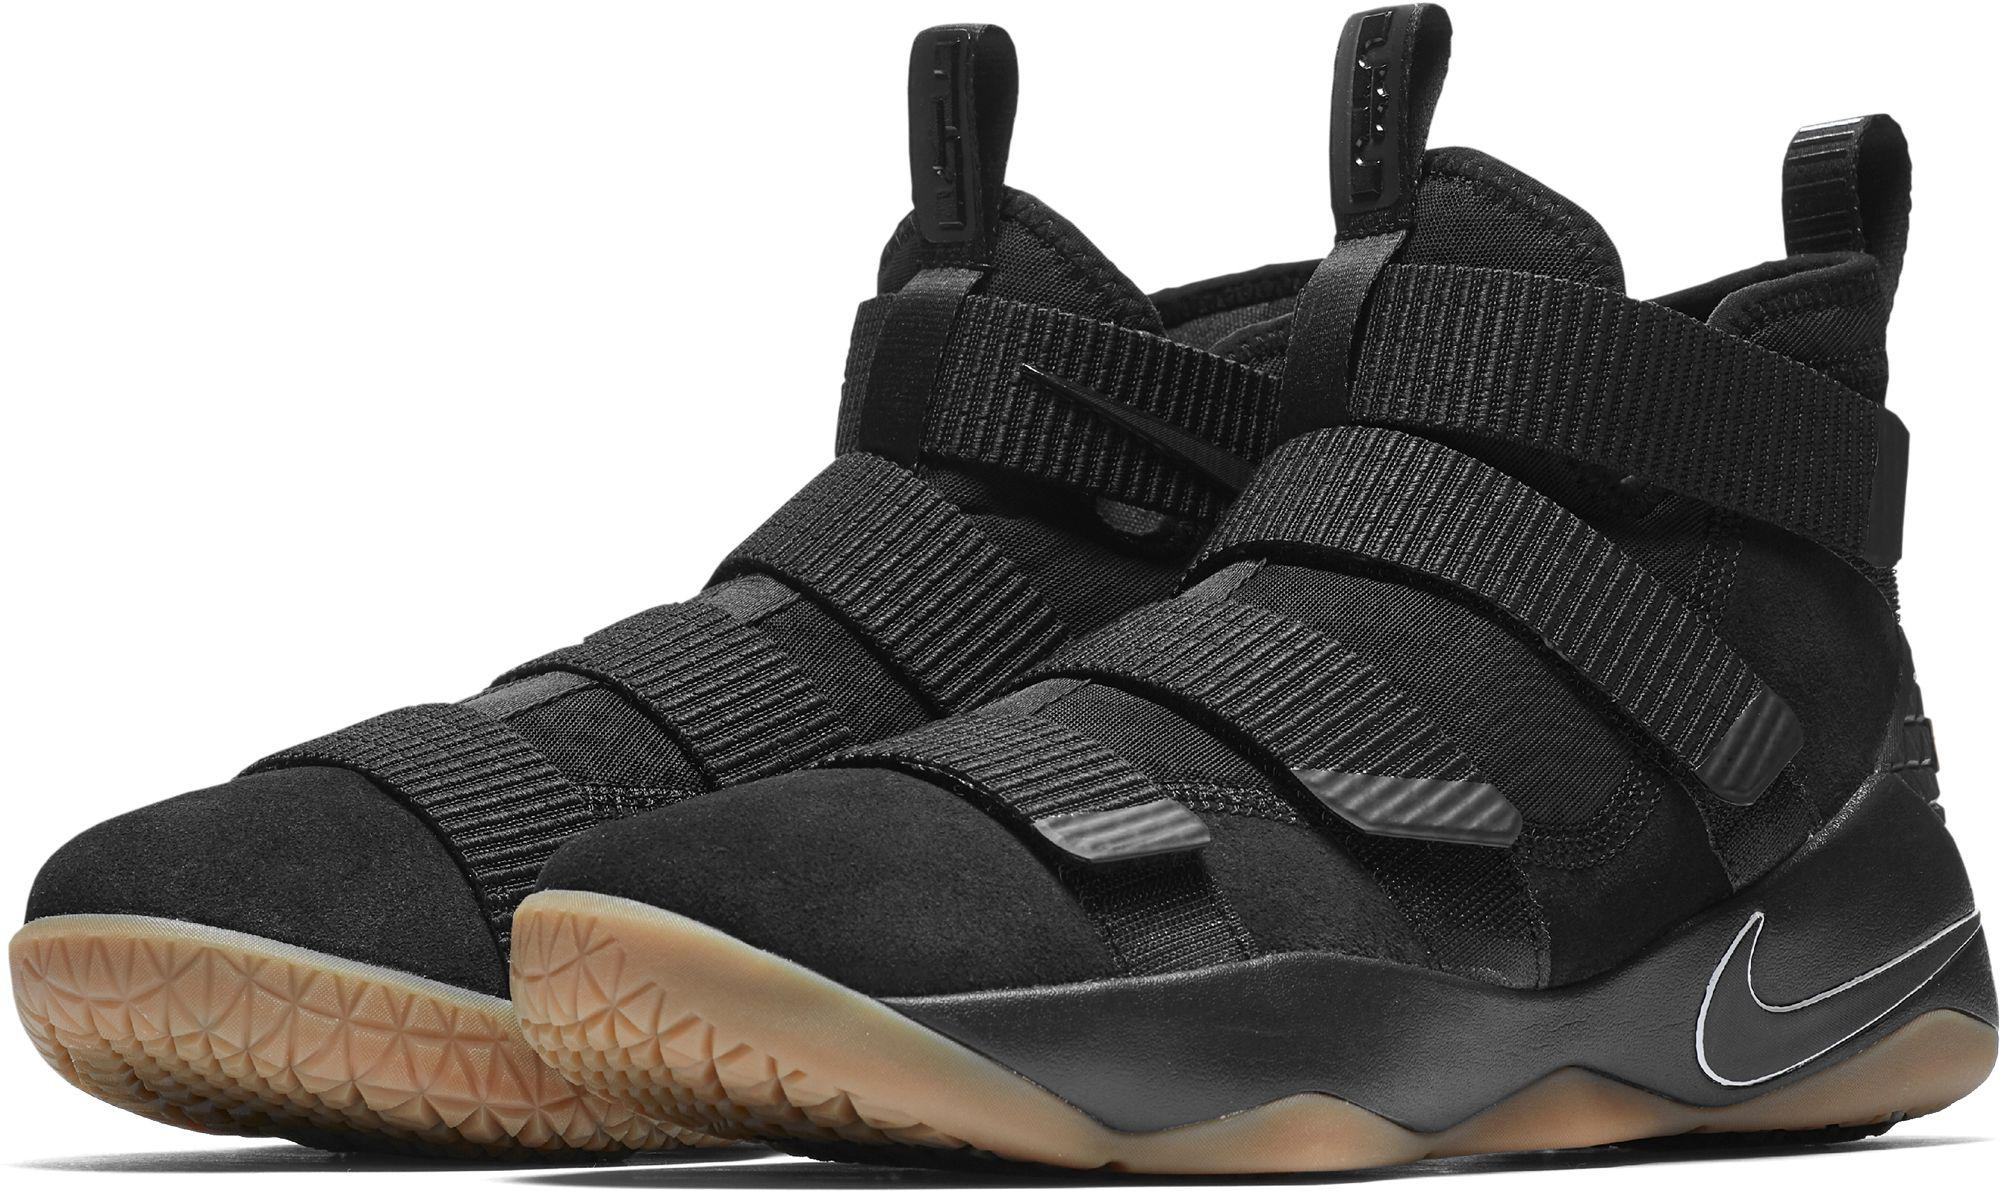 the best attitude 8a876 1785a Nike - Black Zoom Lebron Soldier Xi Basketball Shoes for Men - Lyst